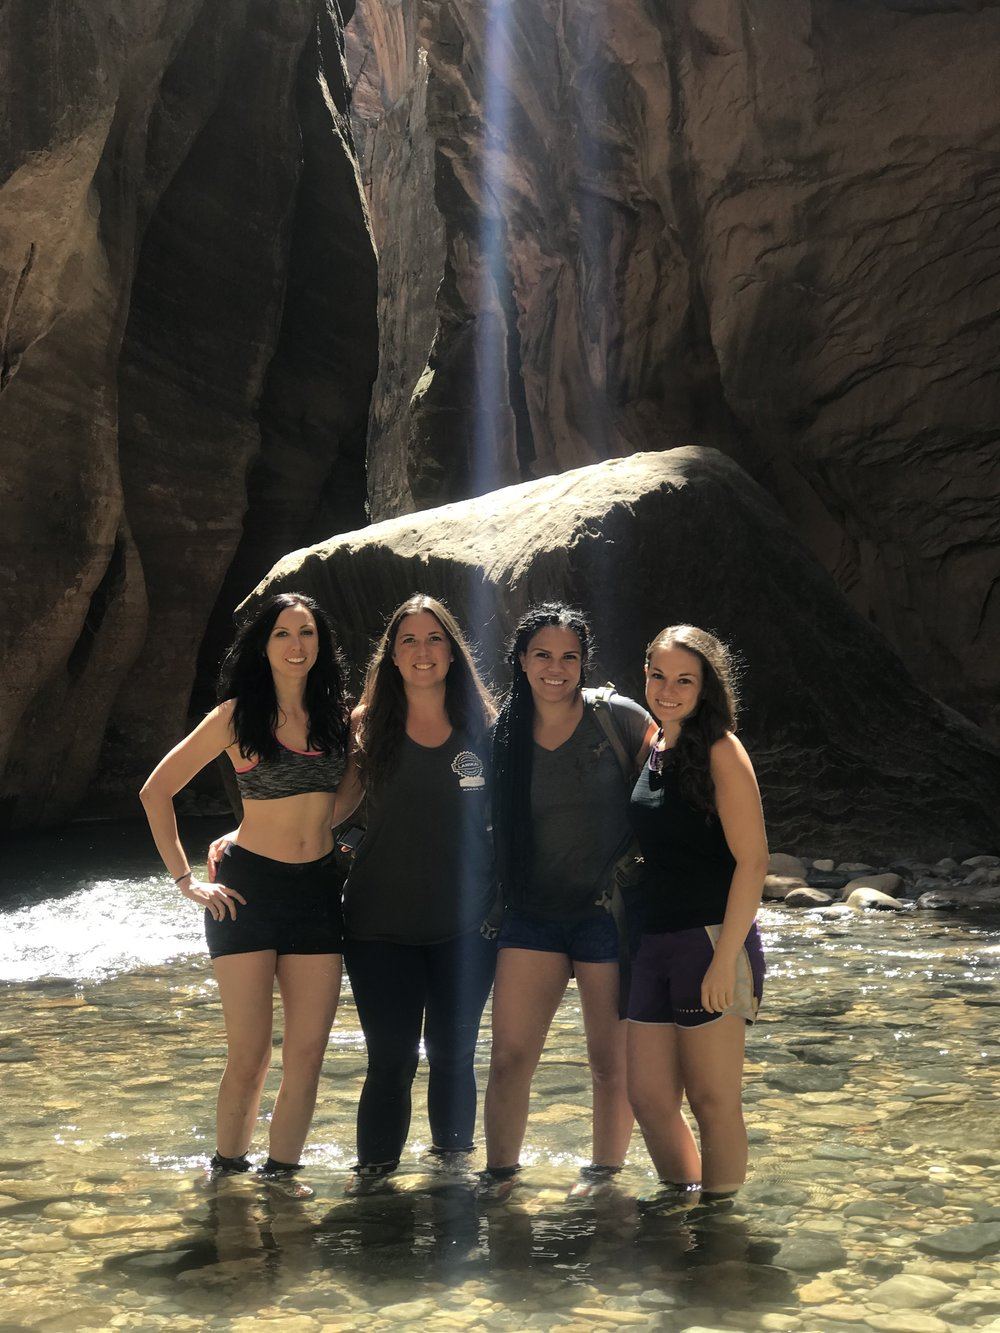 The Narrows, Zion National Park. Left to Right: Amber, Laura, Nadia, Melissa